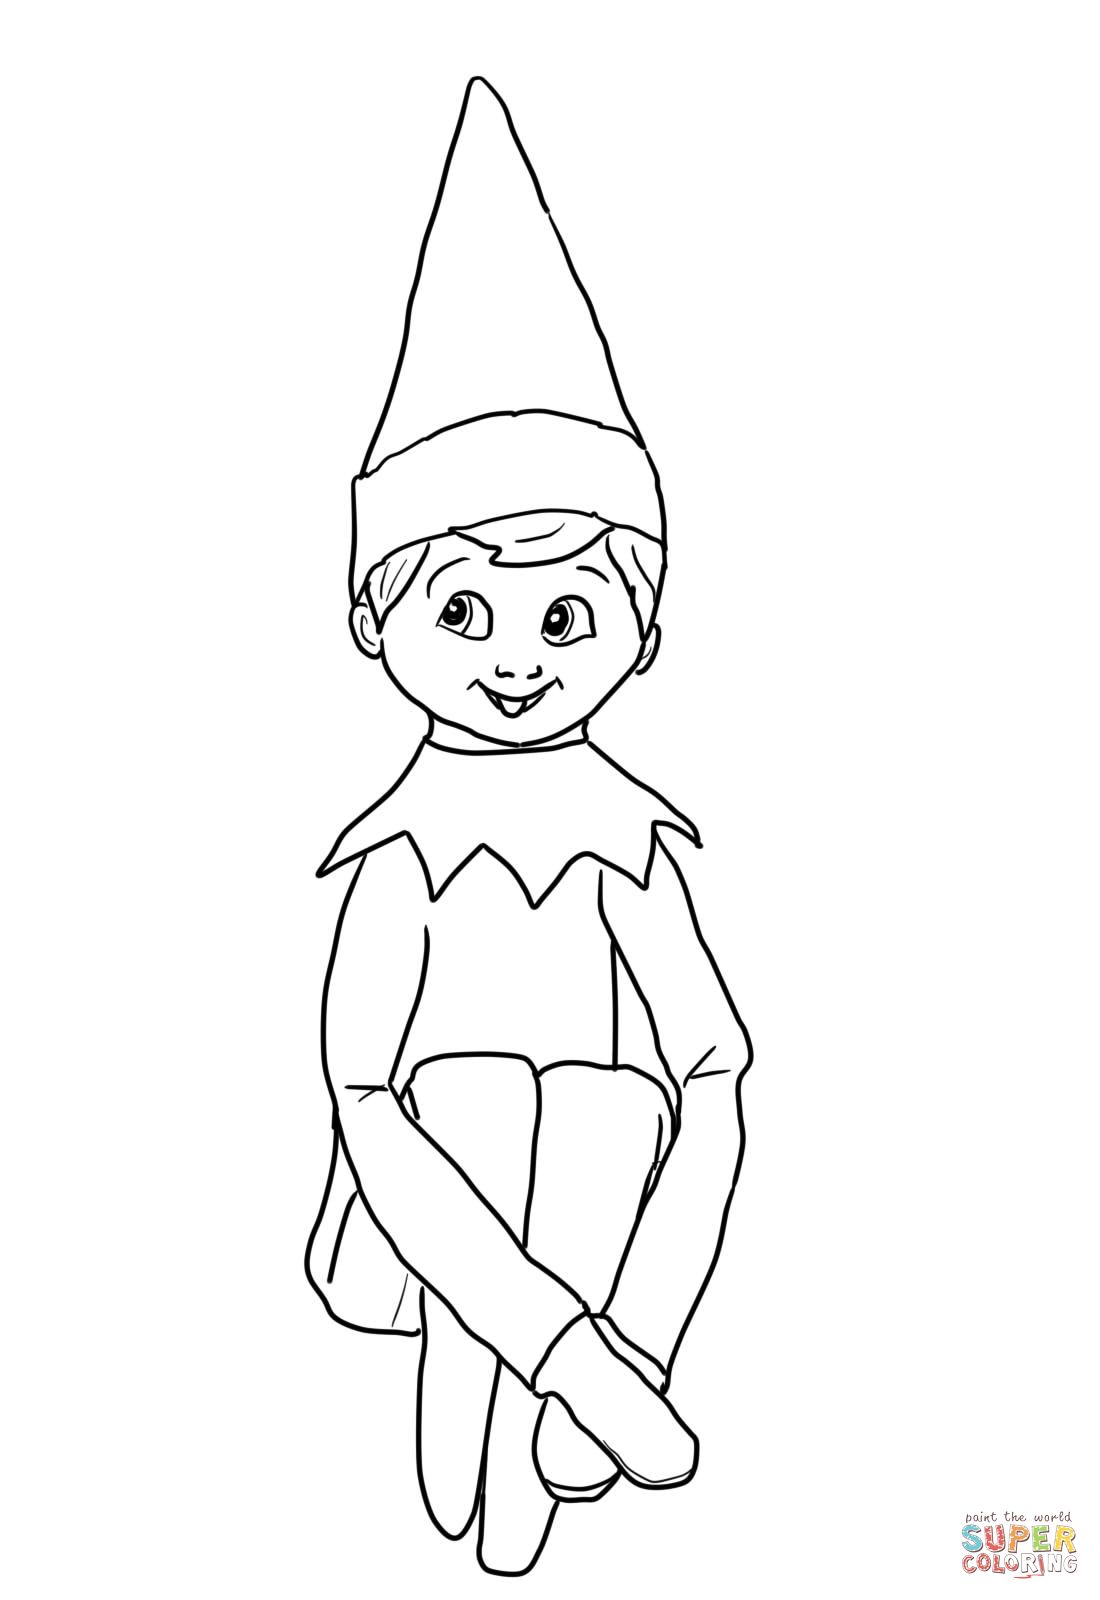 Santa S Elf Colouring Pages With Girl On The Shelf Coloring You Might Also Be Interested